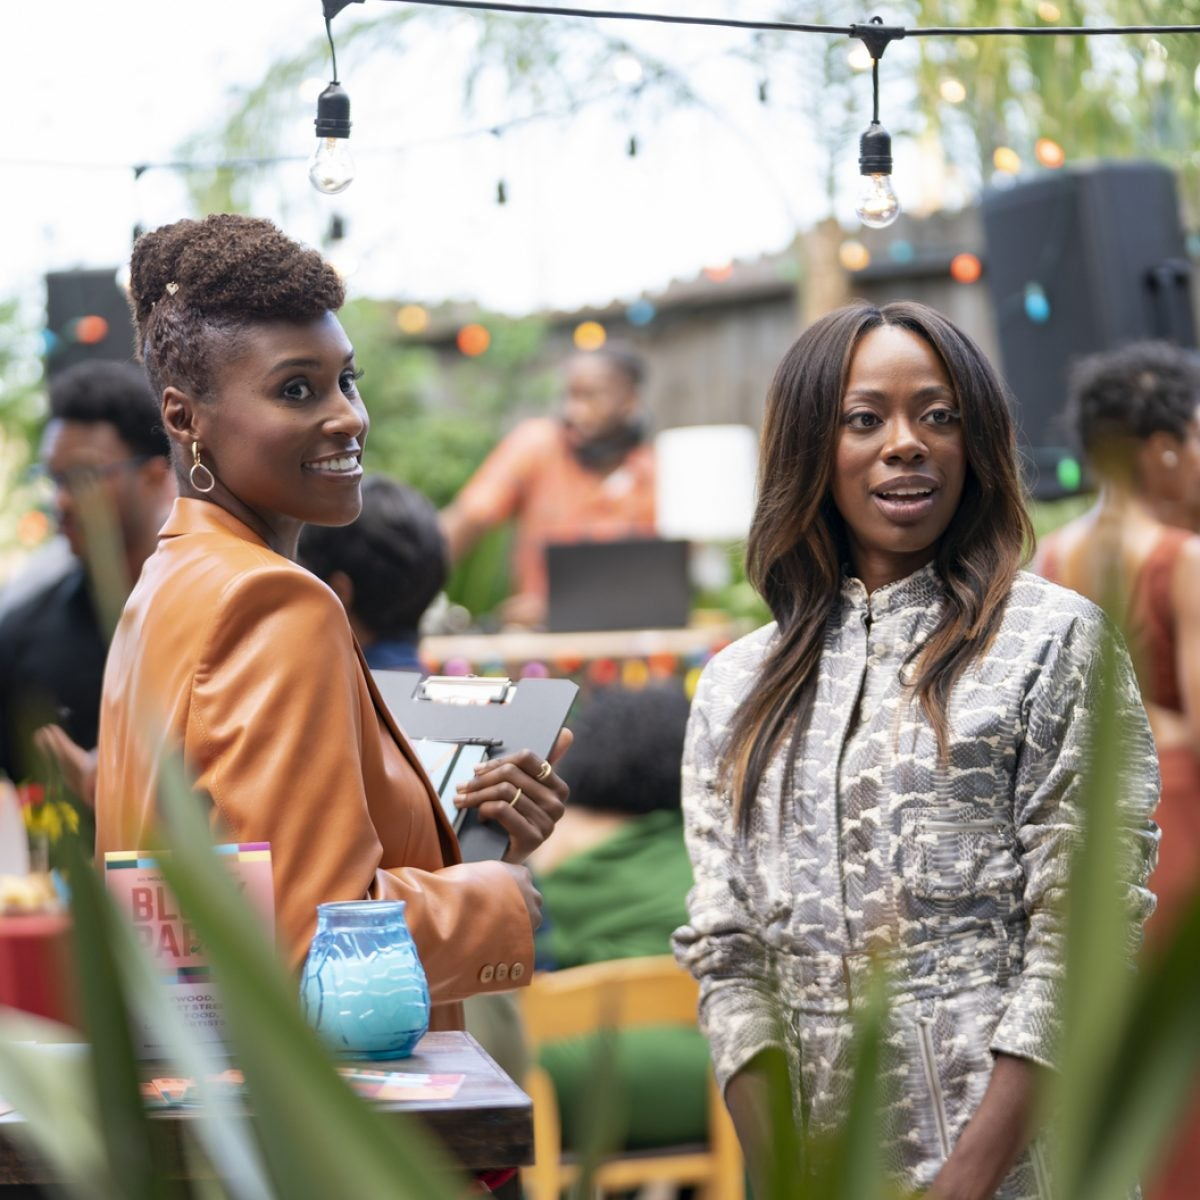 Issa Rae Explains The Real Reason Issa And Molly Are Fighting On 'Insecure'